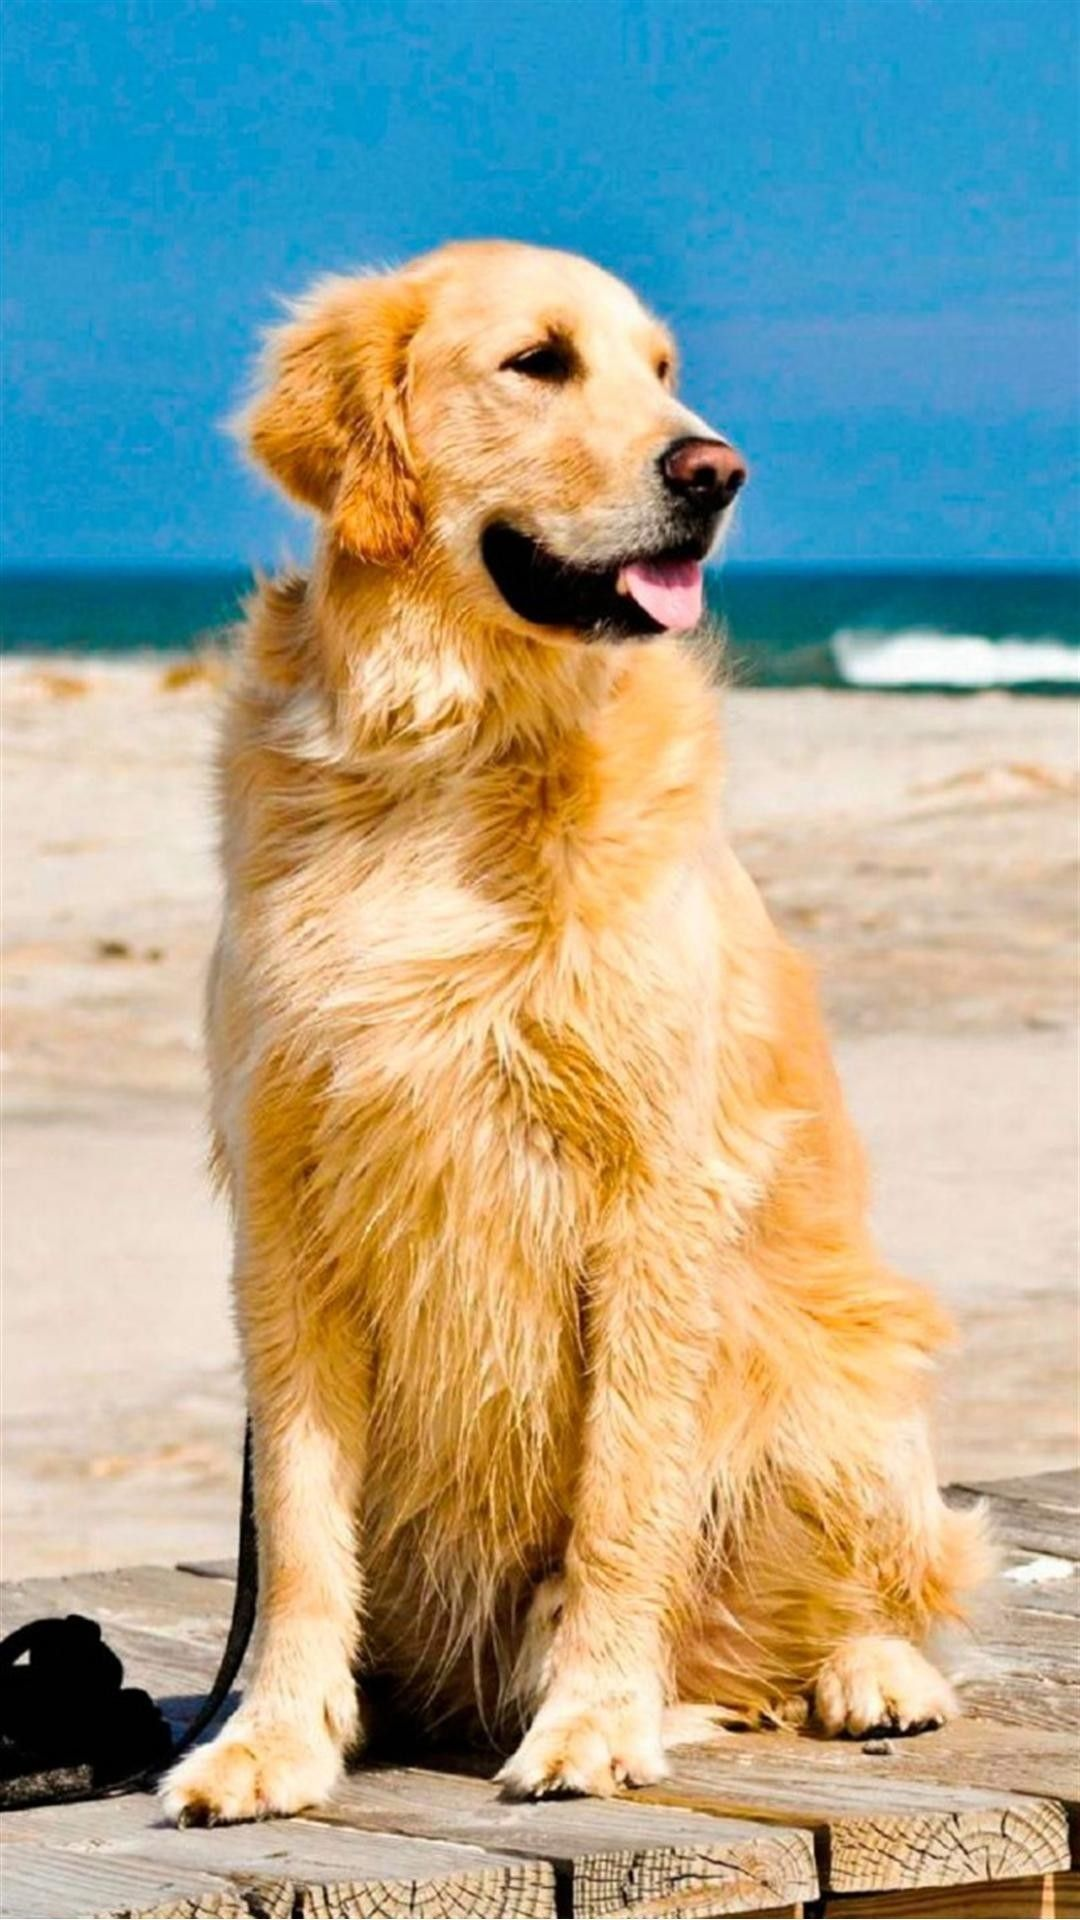 Cute Golden Retriever Beach 4k Hd Android And Iphone Wallpaper